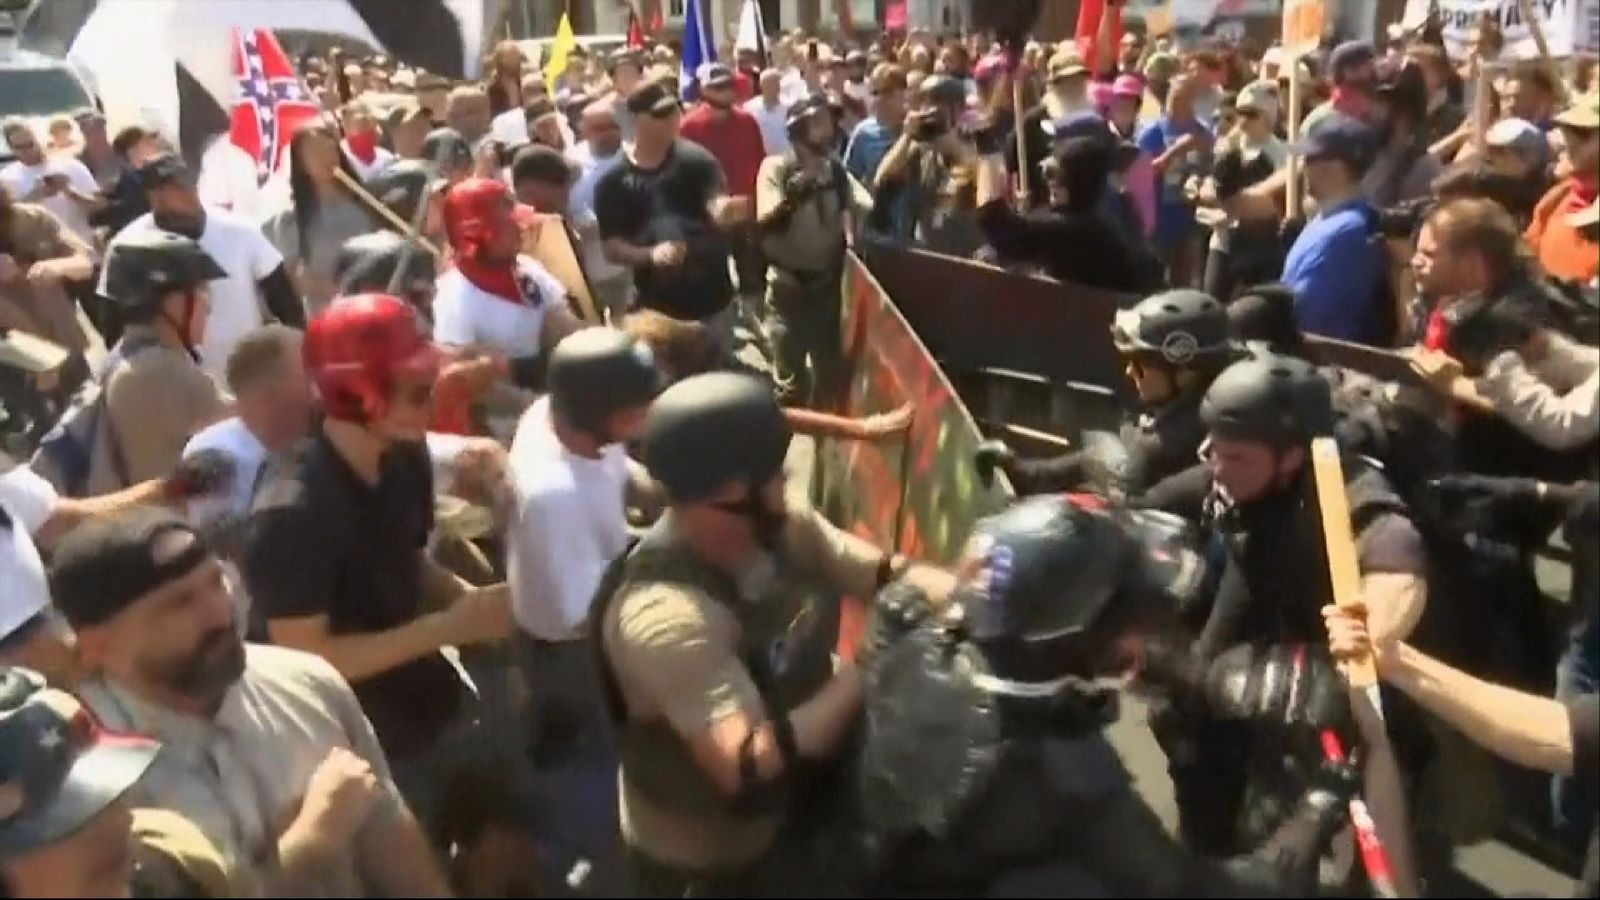 Violence during convene in Charlottesville